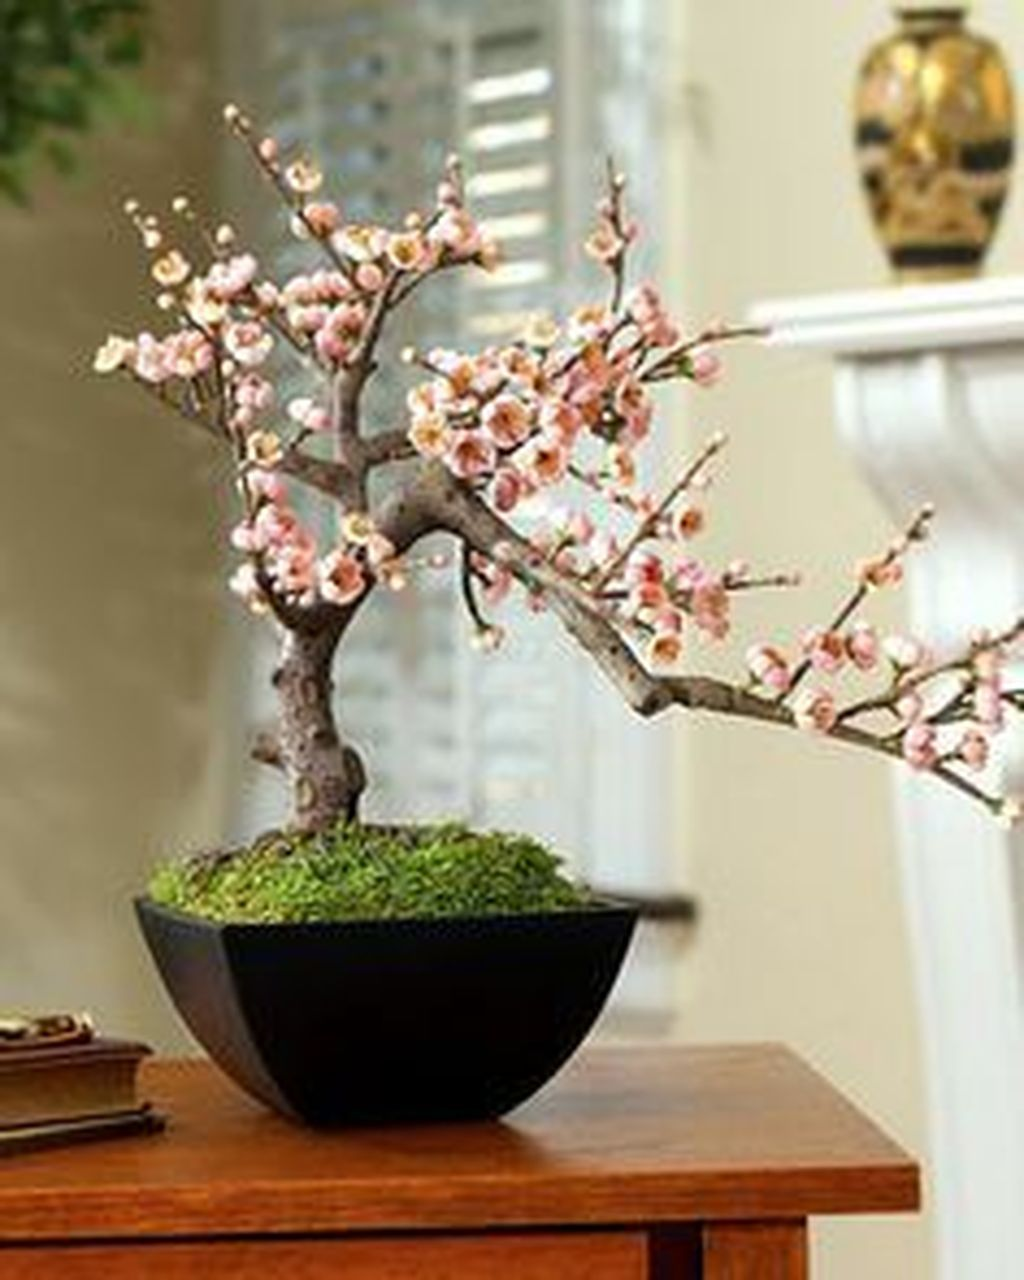 Uvg Fake Cherry Blossom Decorative Artificial Wooden Tree For Top Table Landscaping Chr164 Peach Blossom Tree Artificial Cherry Blossom Tree Wooden Tree